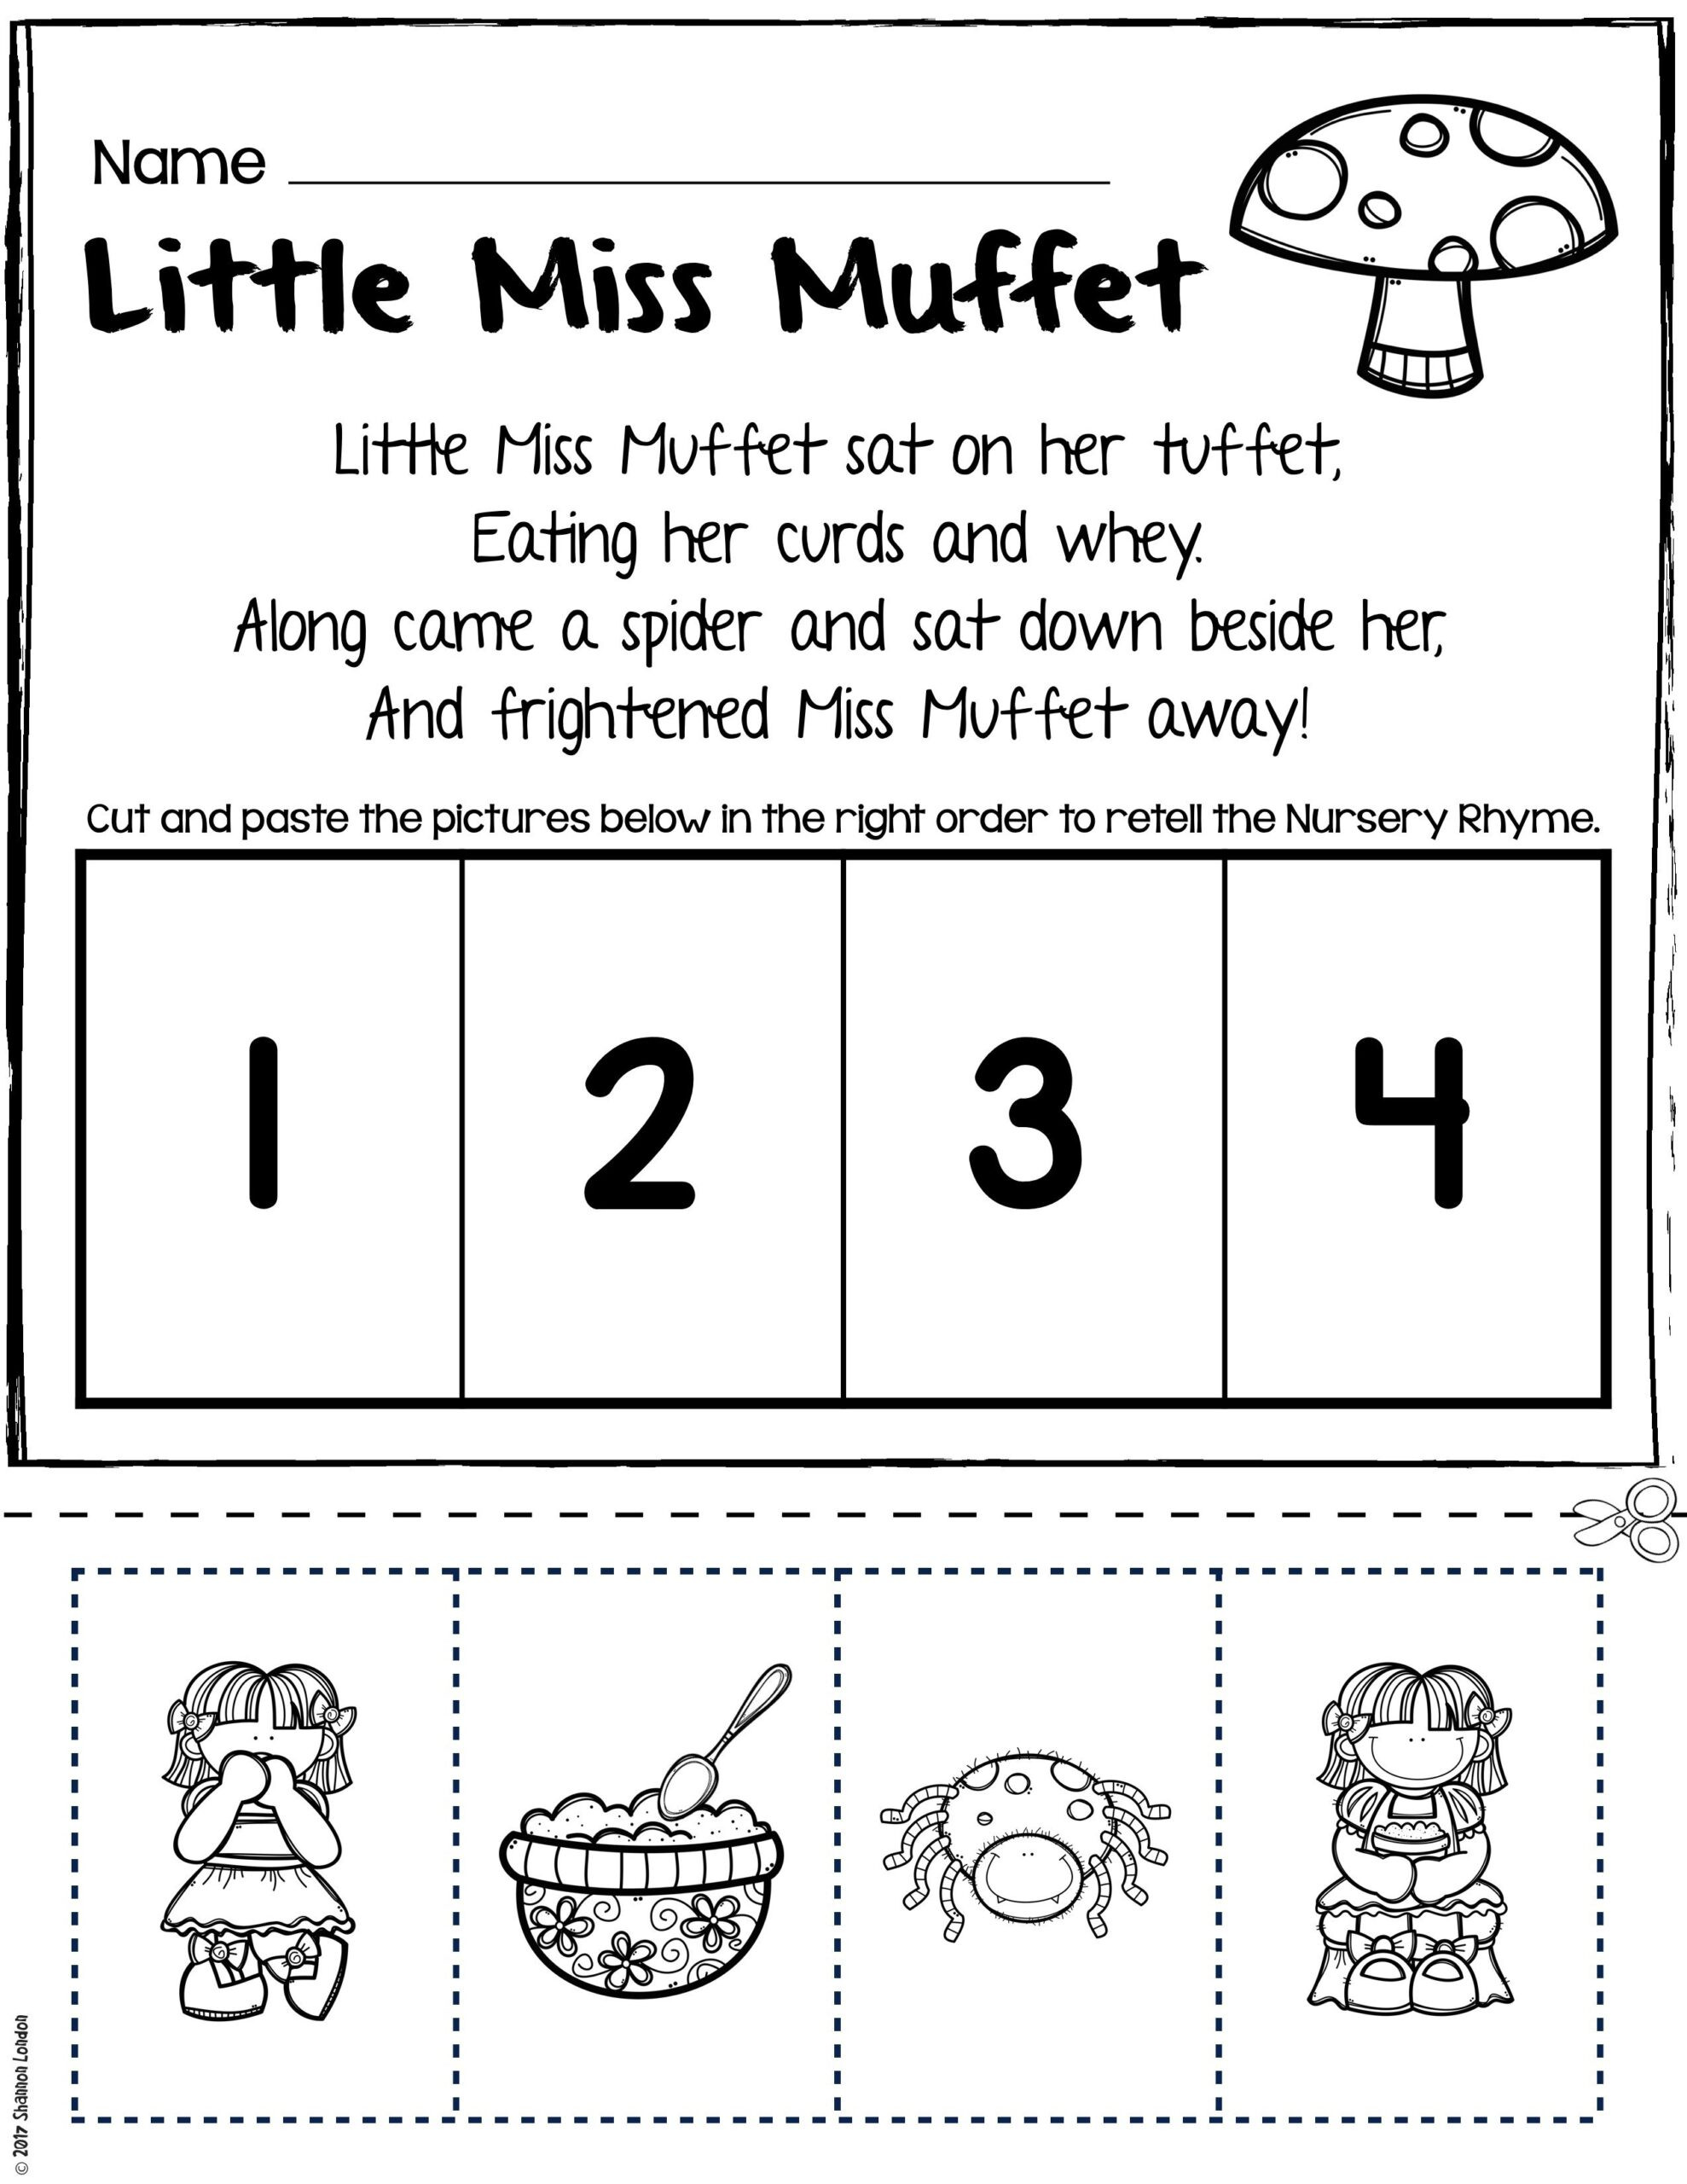 Rhyming Worksheets for Preschoolers Rhyming Printables for Preschool Worksheet